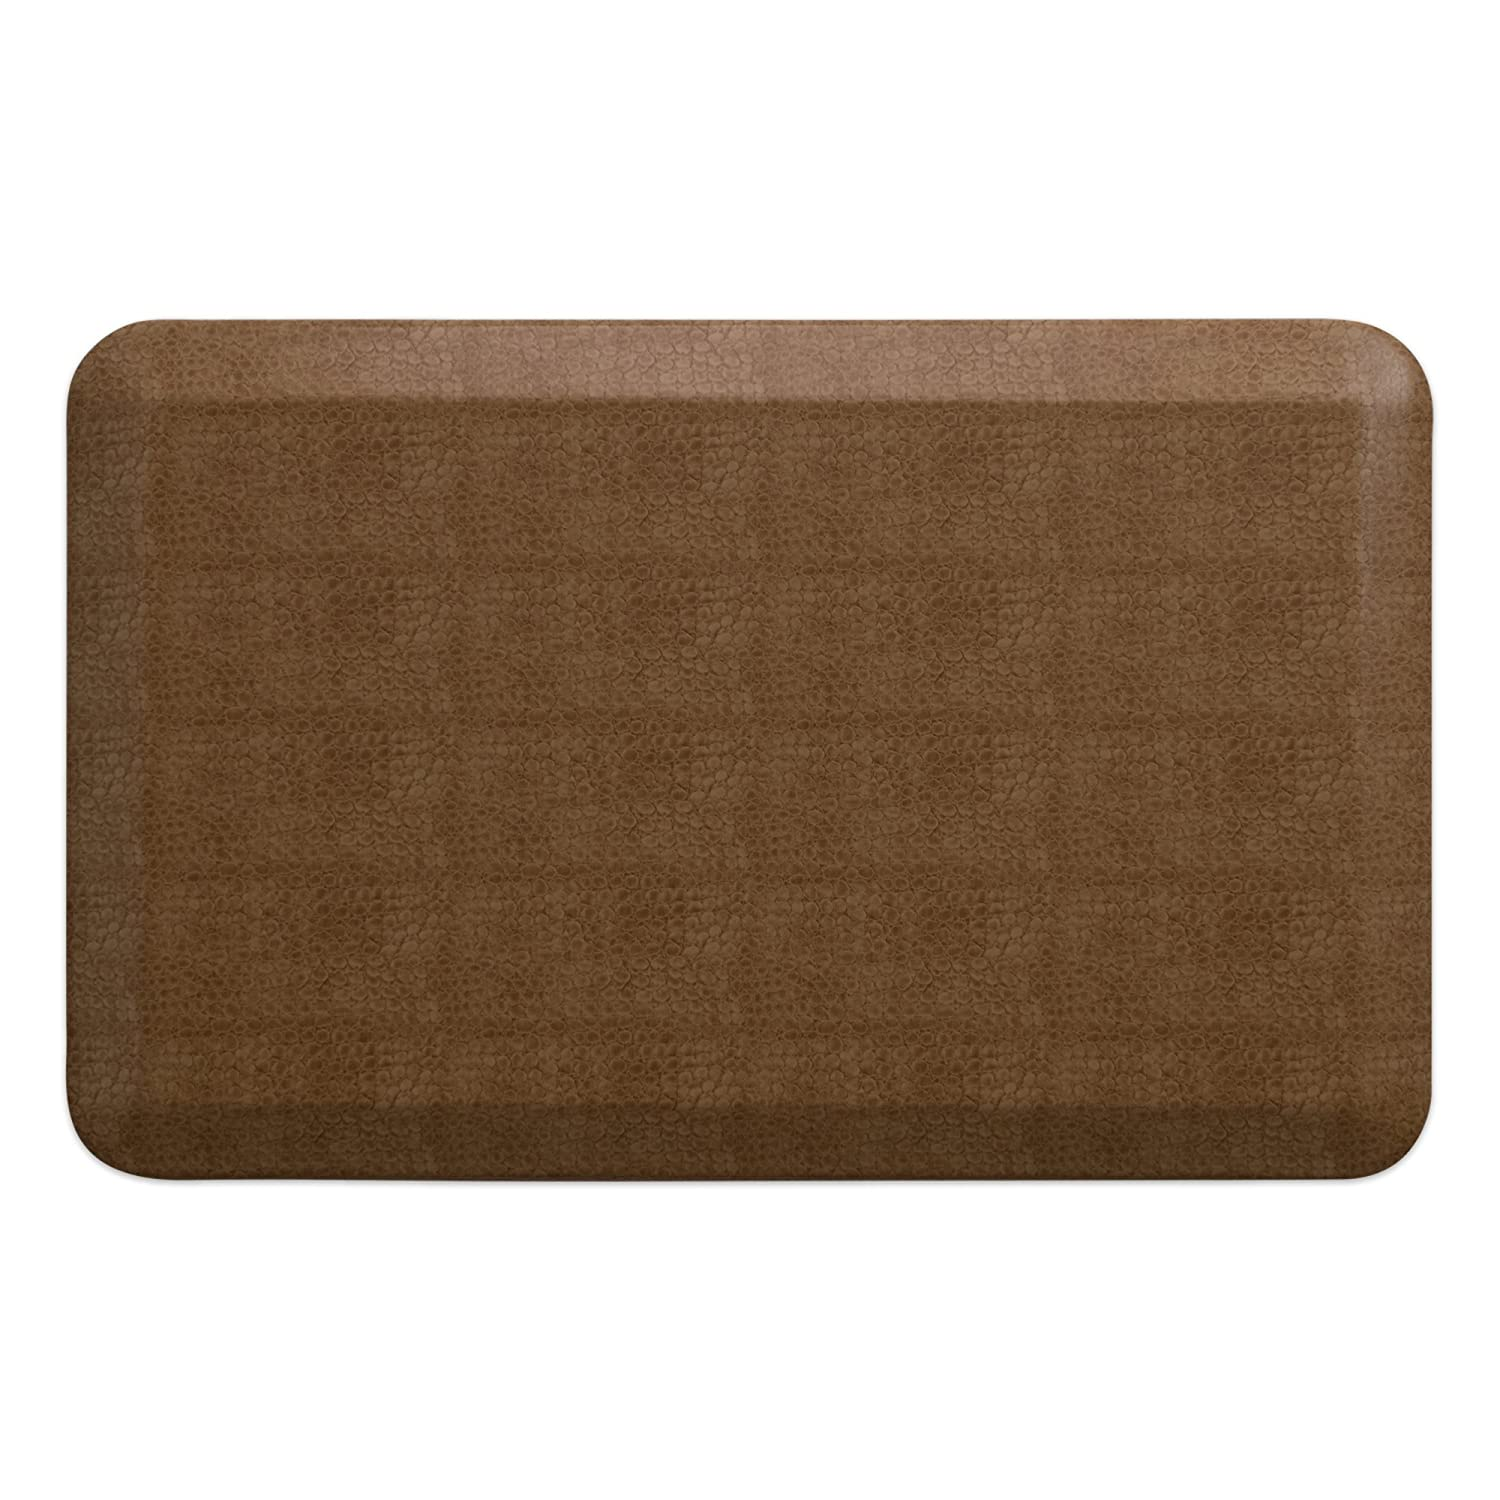 Pebble Caramel 20  x 32  NewLife by GelPro Designer Comfort Mat, 20 by 72-Inch, Lattice Mineral Grey